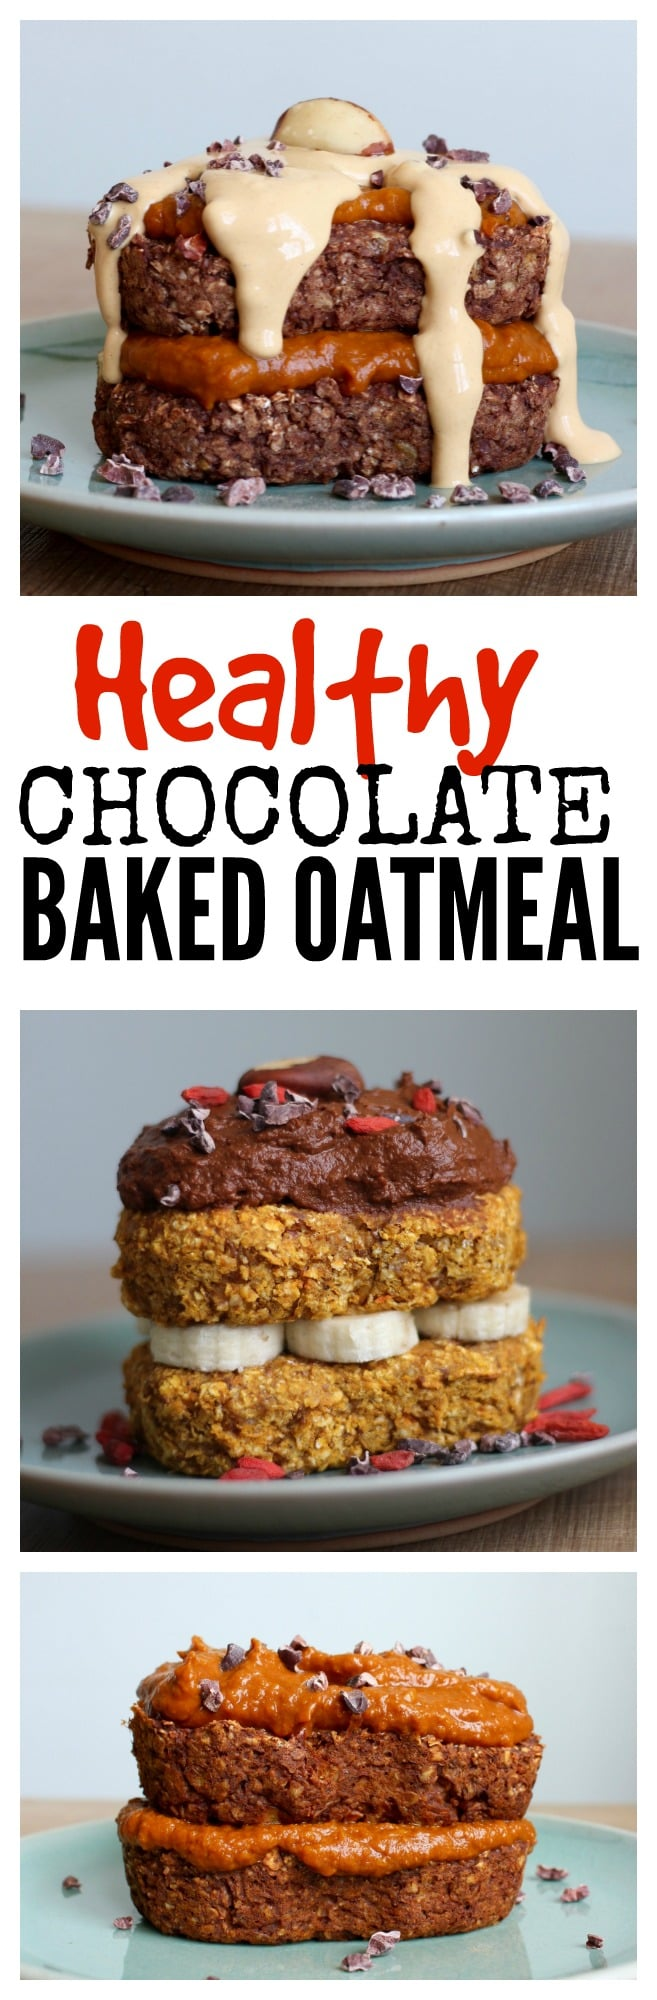 Healthy Chocolate Baked Oatmeal | The Conscientious Eater